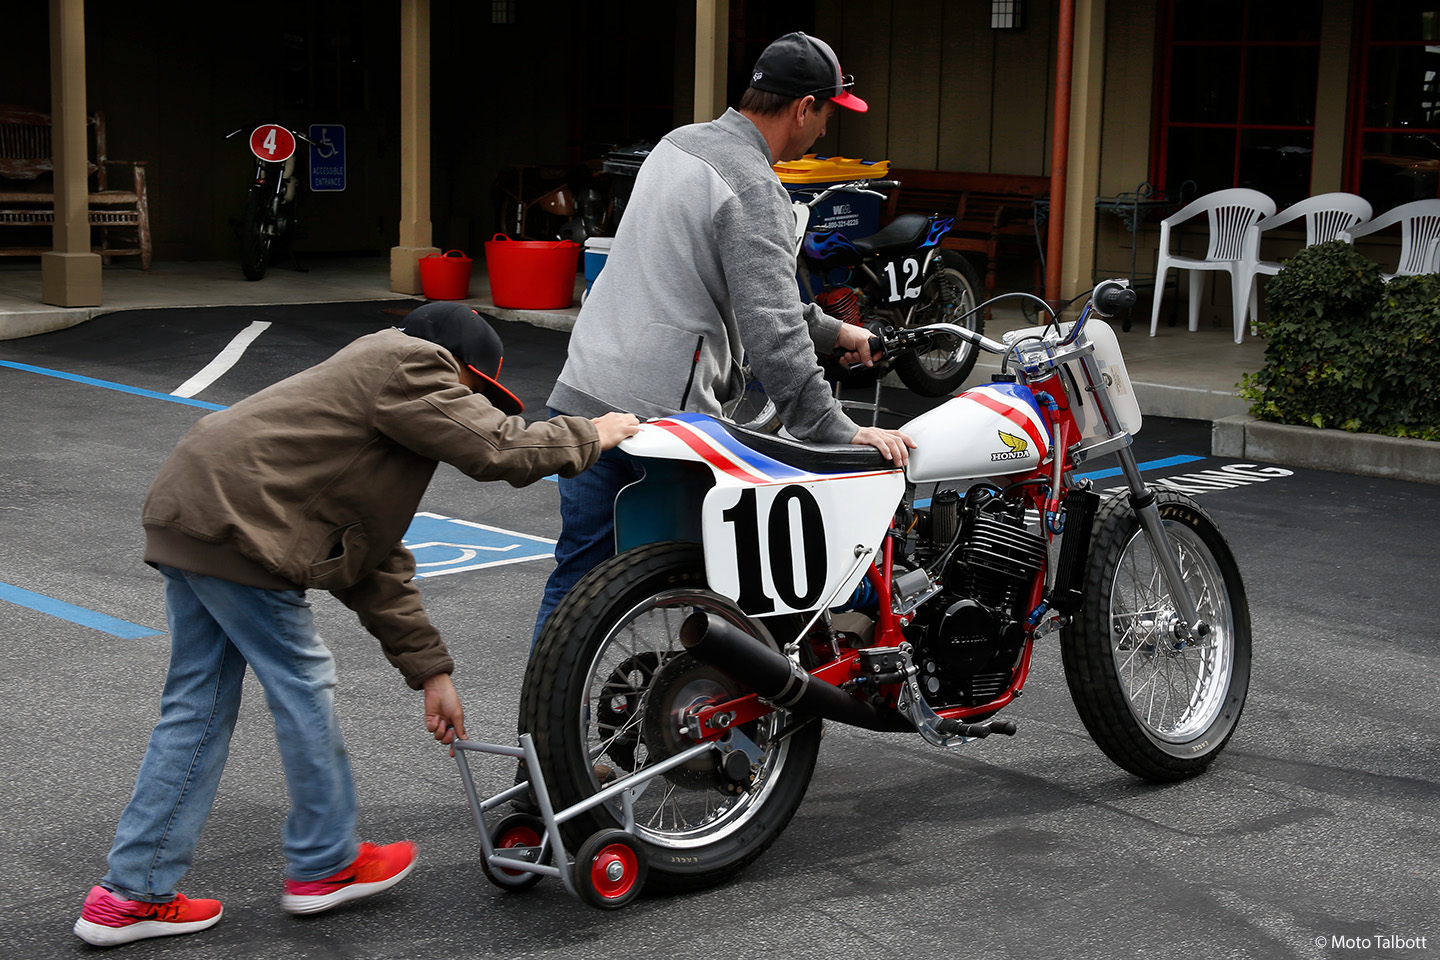 Honda RS 600 ridden by Hall of Fame rider and local resident Doug Chandler, being wheeled in by Anthony Giammanco.